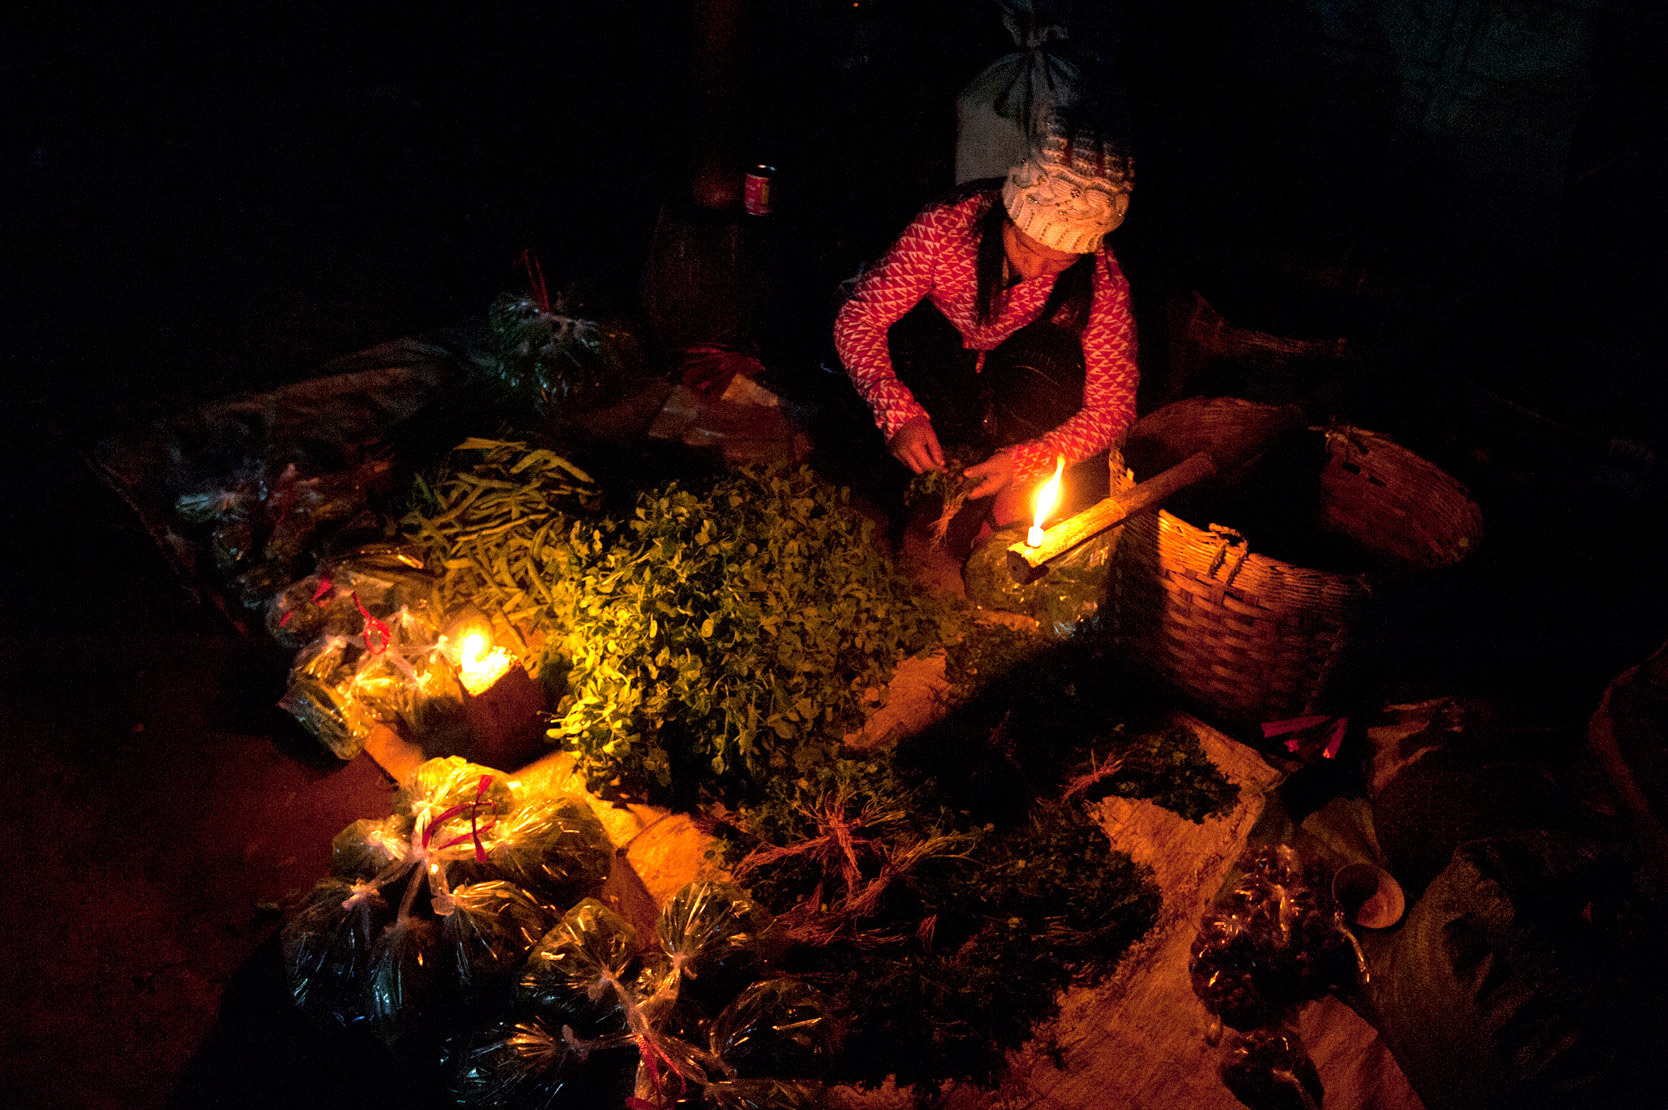 Woman preparing and selling fresh vegetables and herbs in 'candlelight street market' in Hsipaw, Shan state, Myanmar.